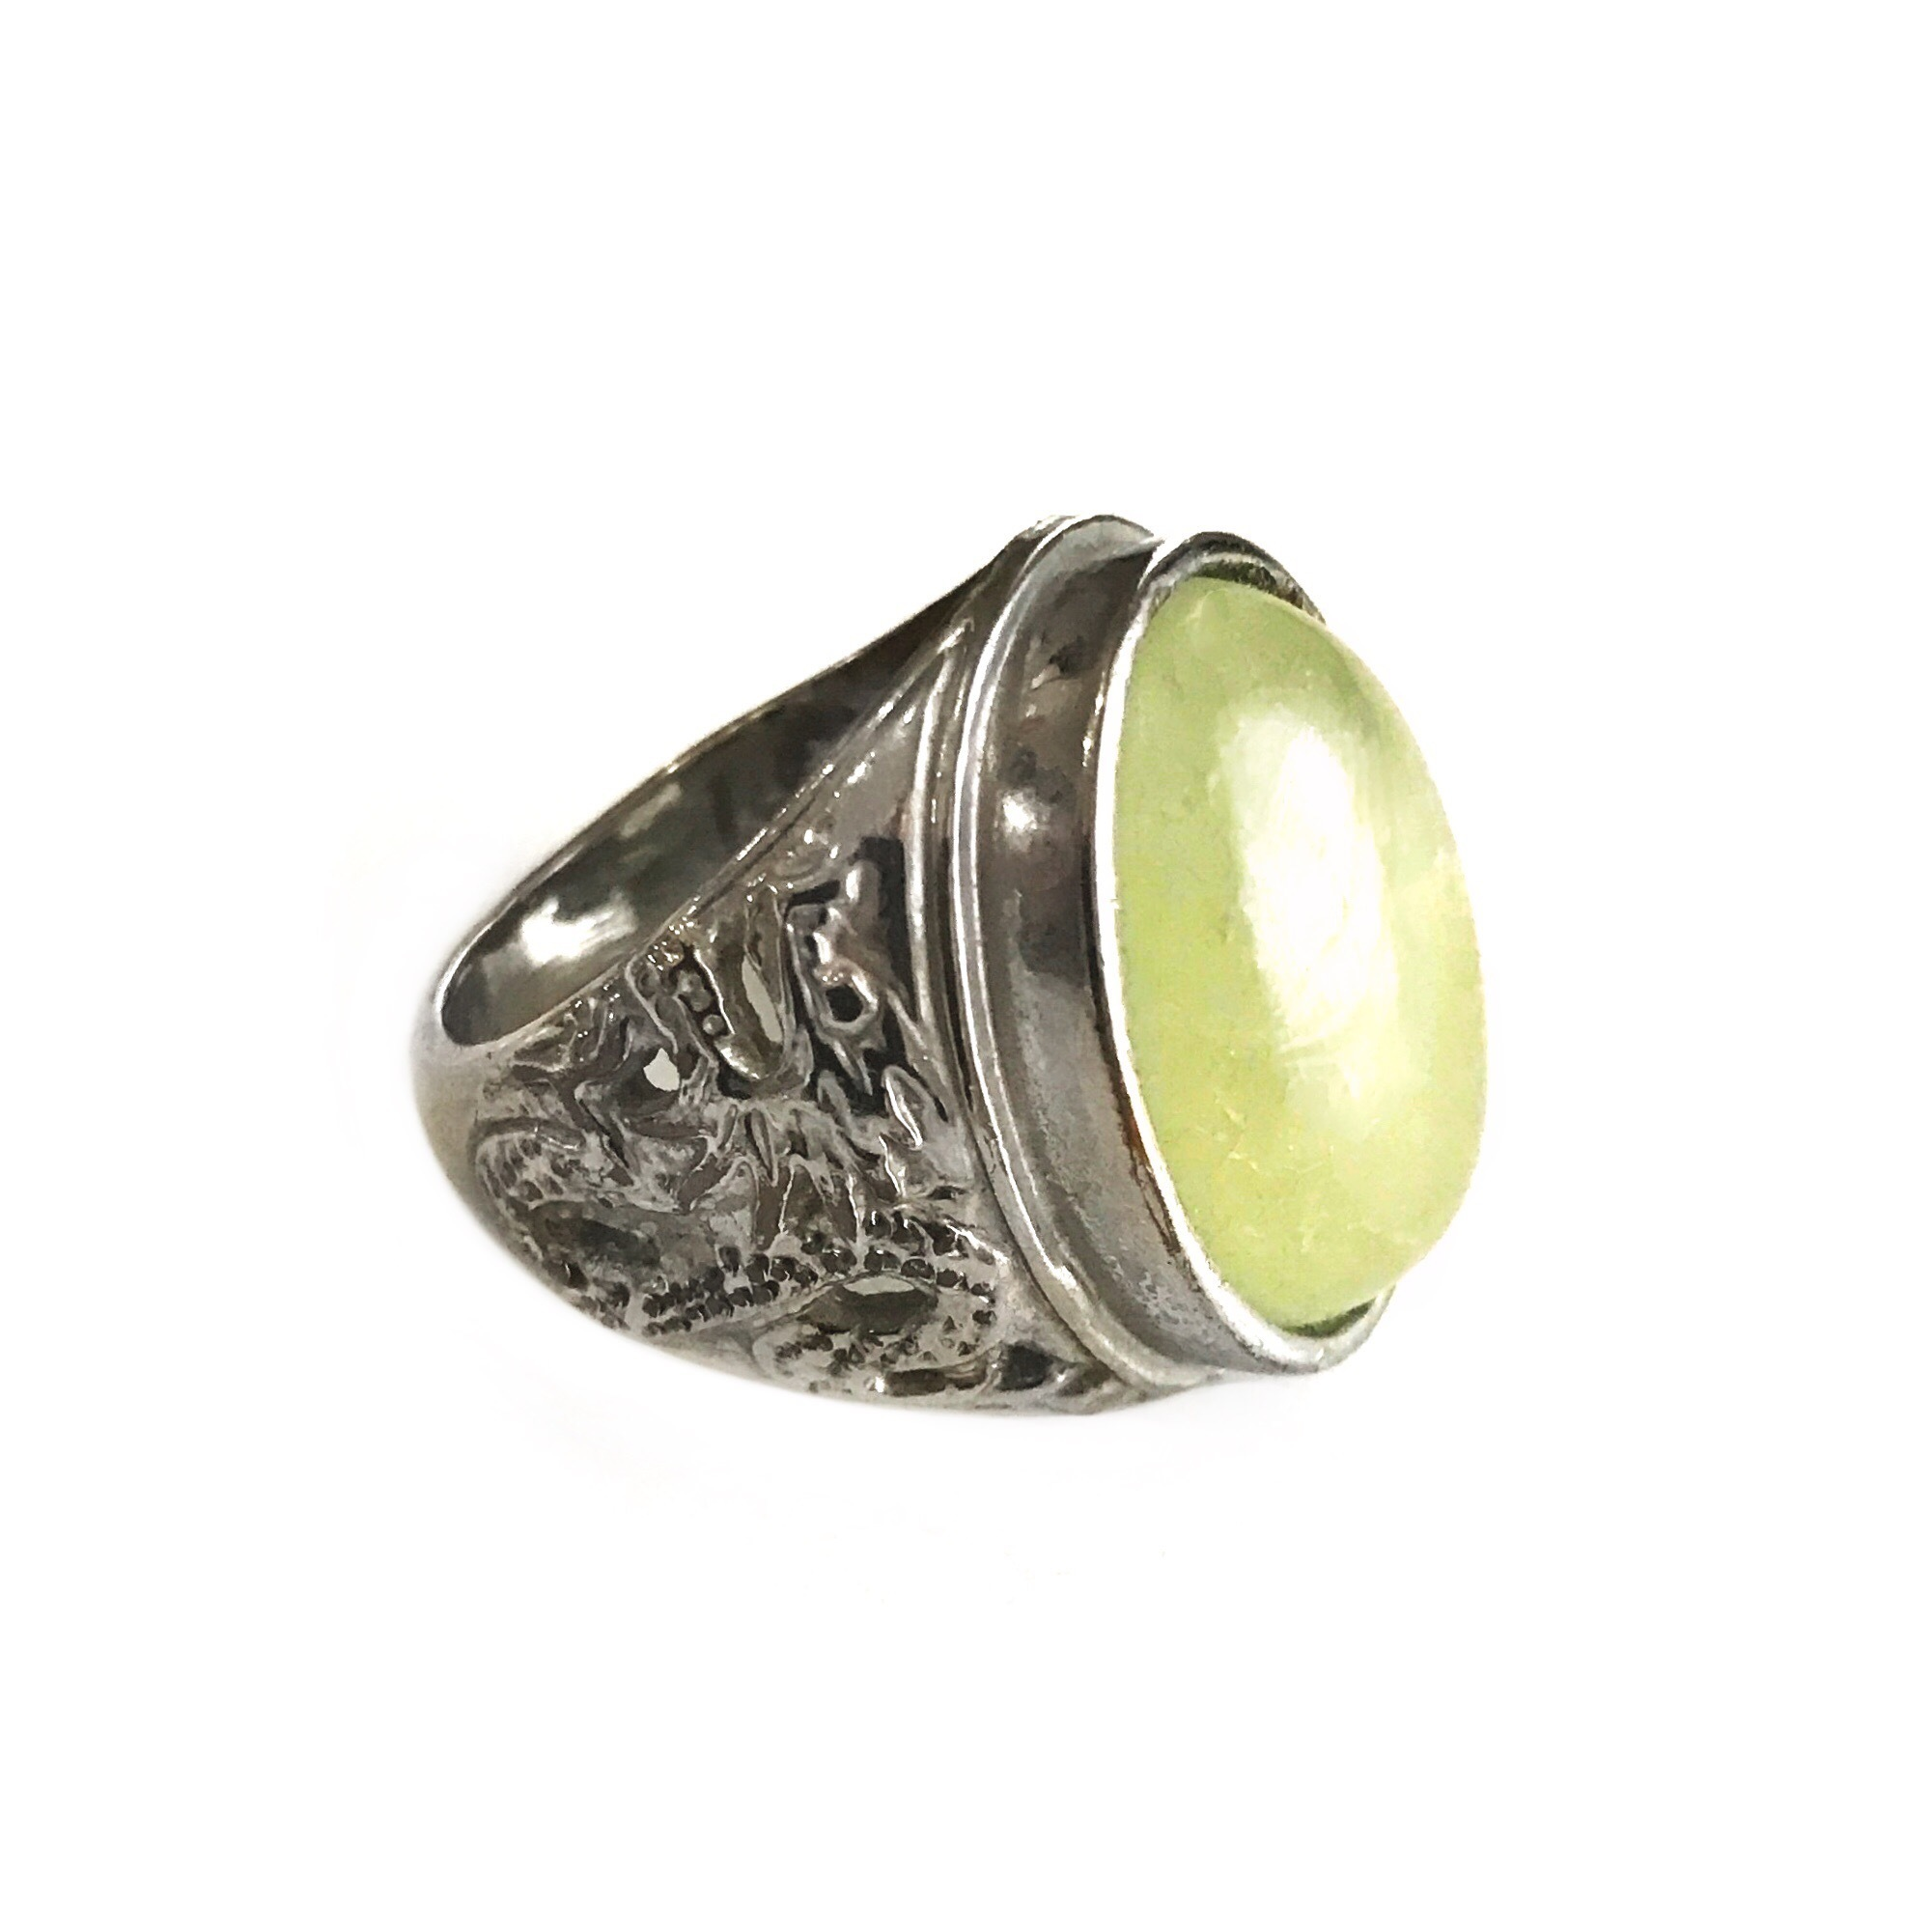 rings and liu dawn fei black zirconia oval with cubic rhodium textured fluorite finish ring green white pin